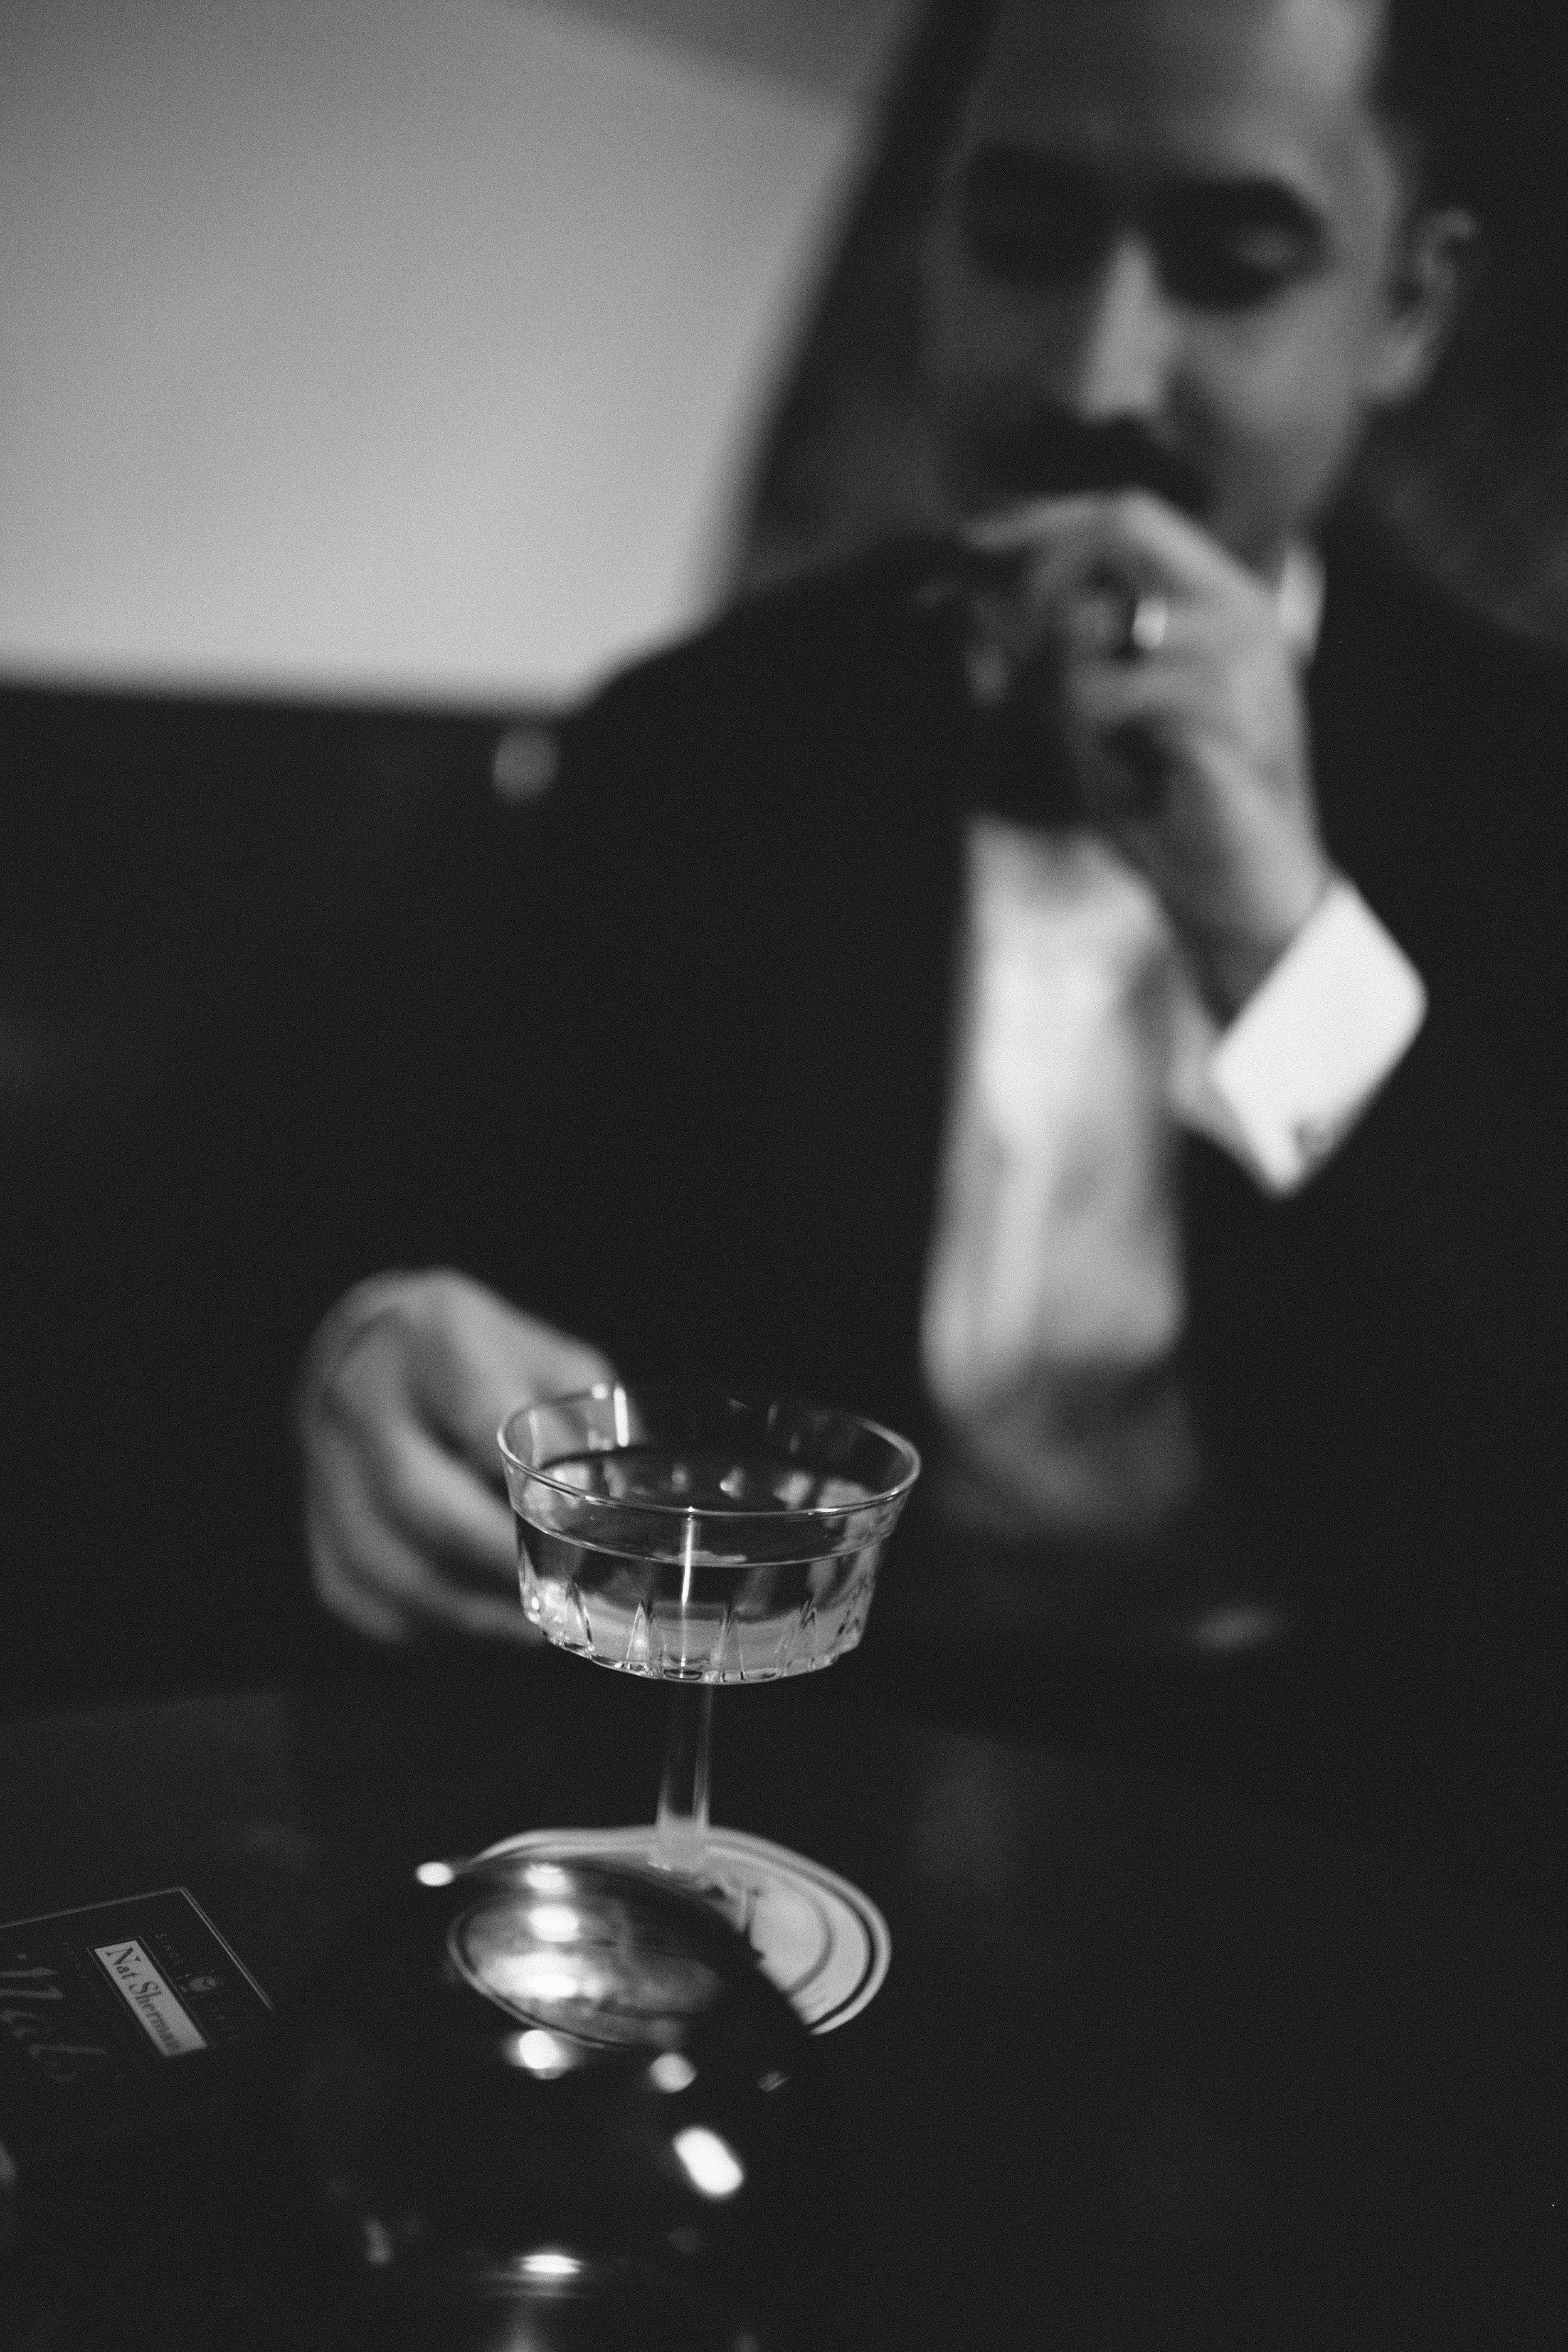 ford mixology lab flatiron lounge black and white rat pack inspired new york city chellise michael photography mark iii meet the michaels tanquere congac